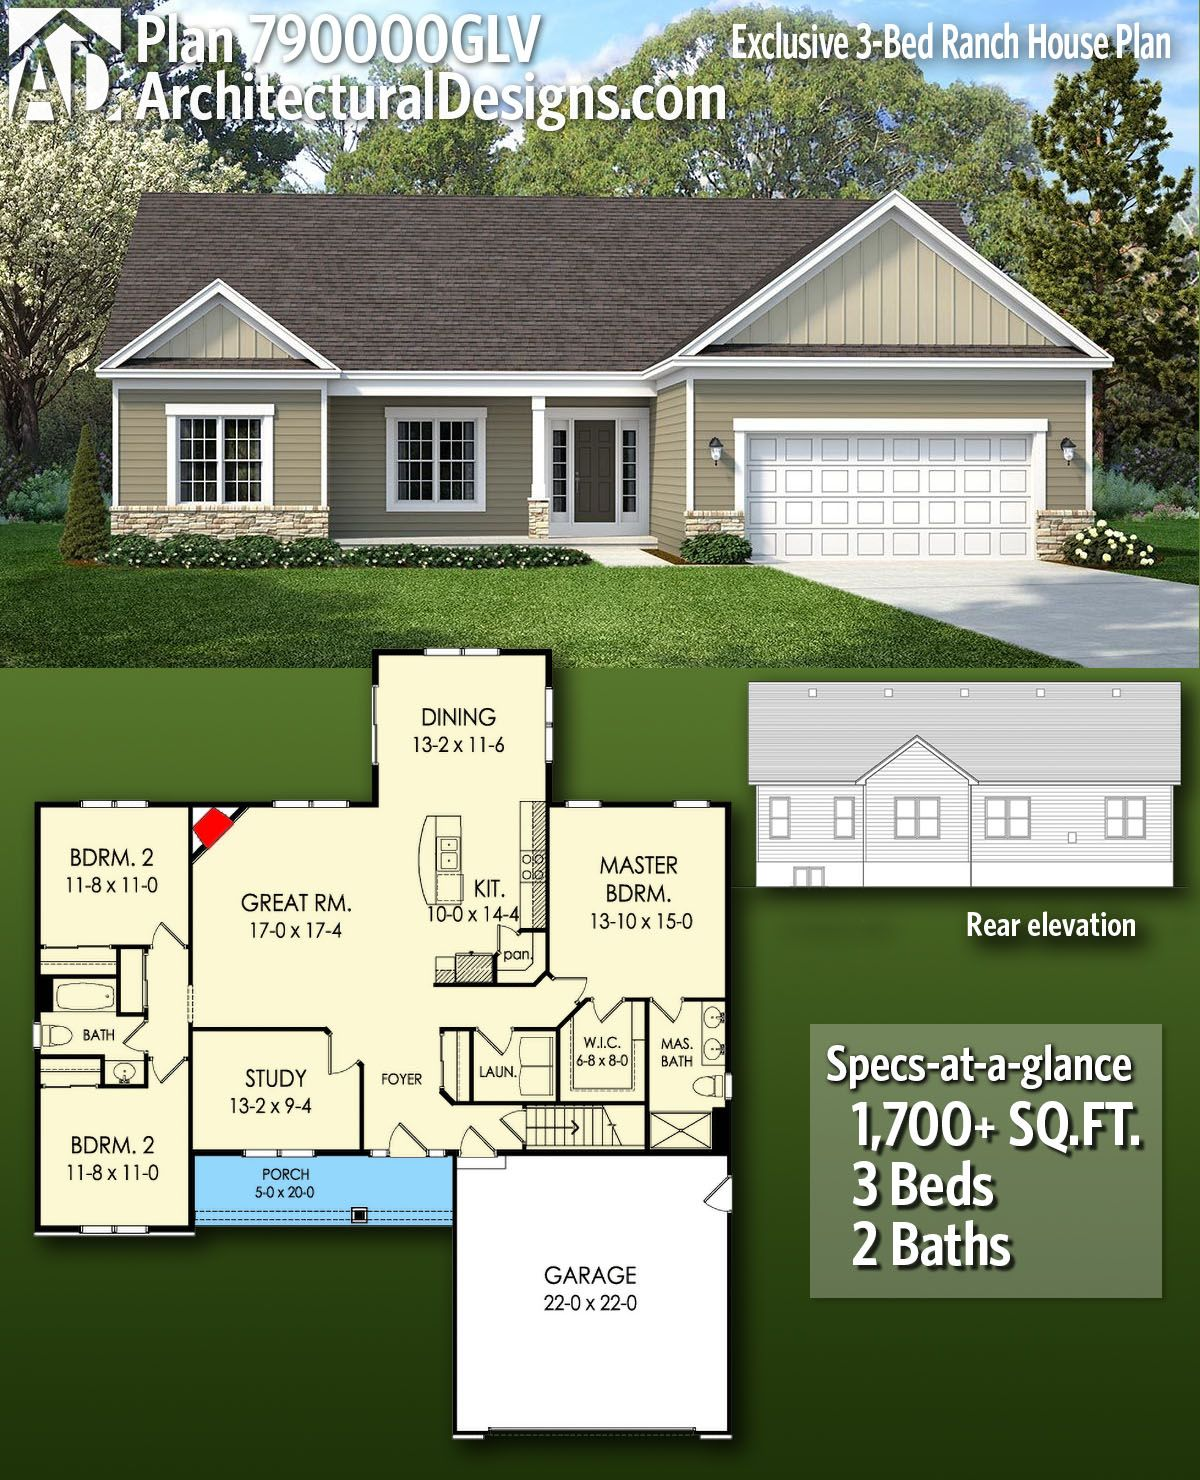 plan 790000glv exclusive 3 bed ranch house plan architectural rh pinterest com